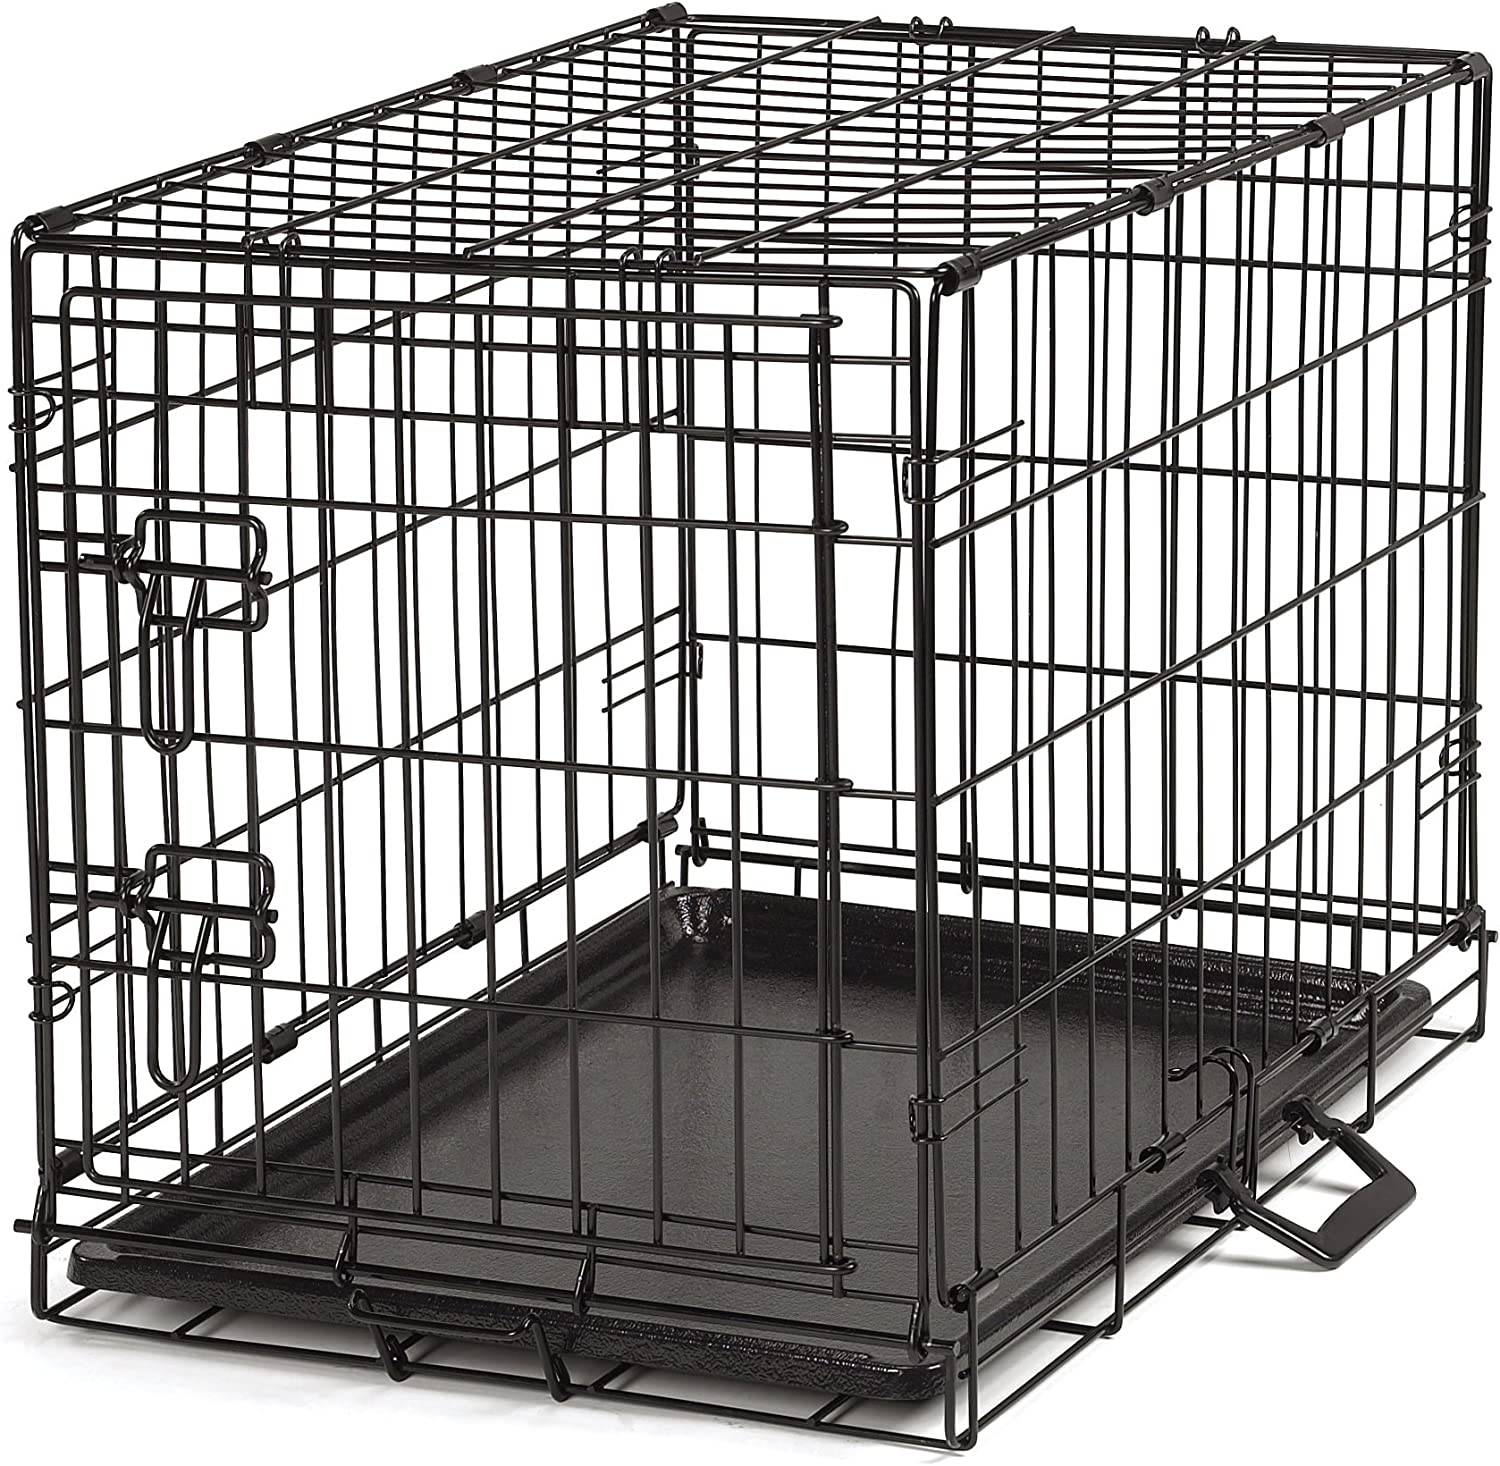 Ppinklect Easy Wire Dog Crate, Medium, Black